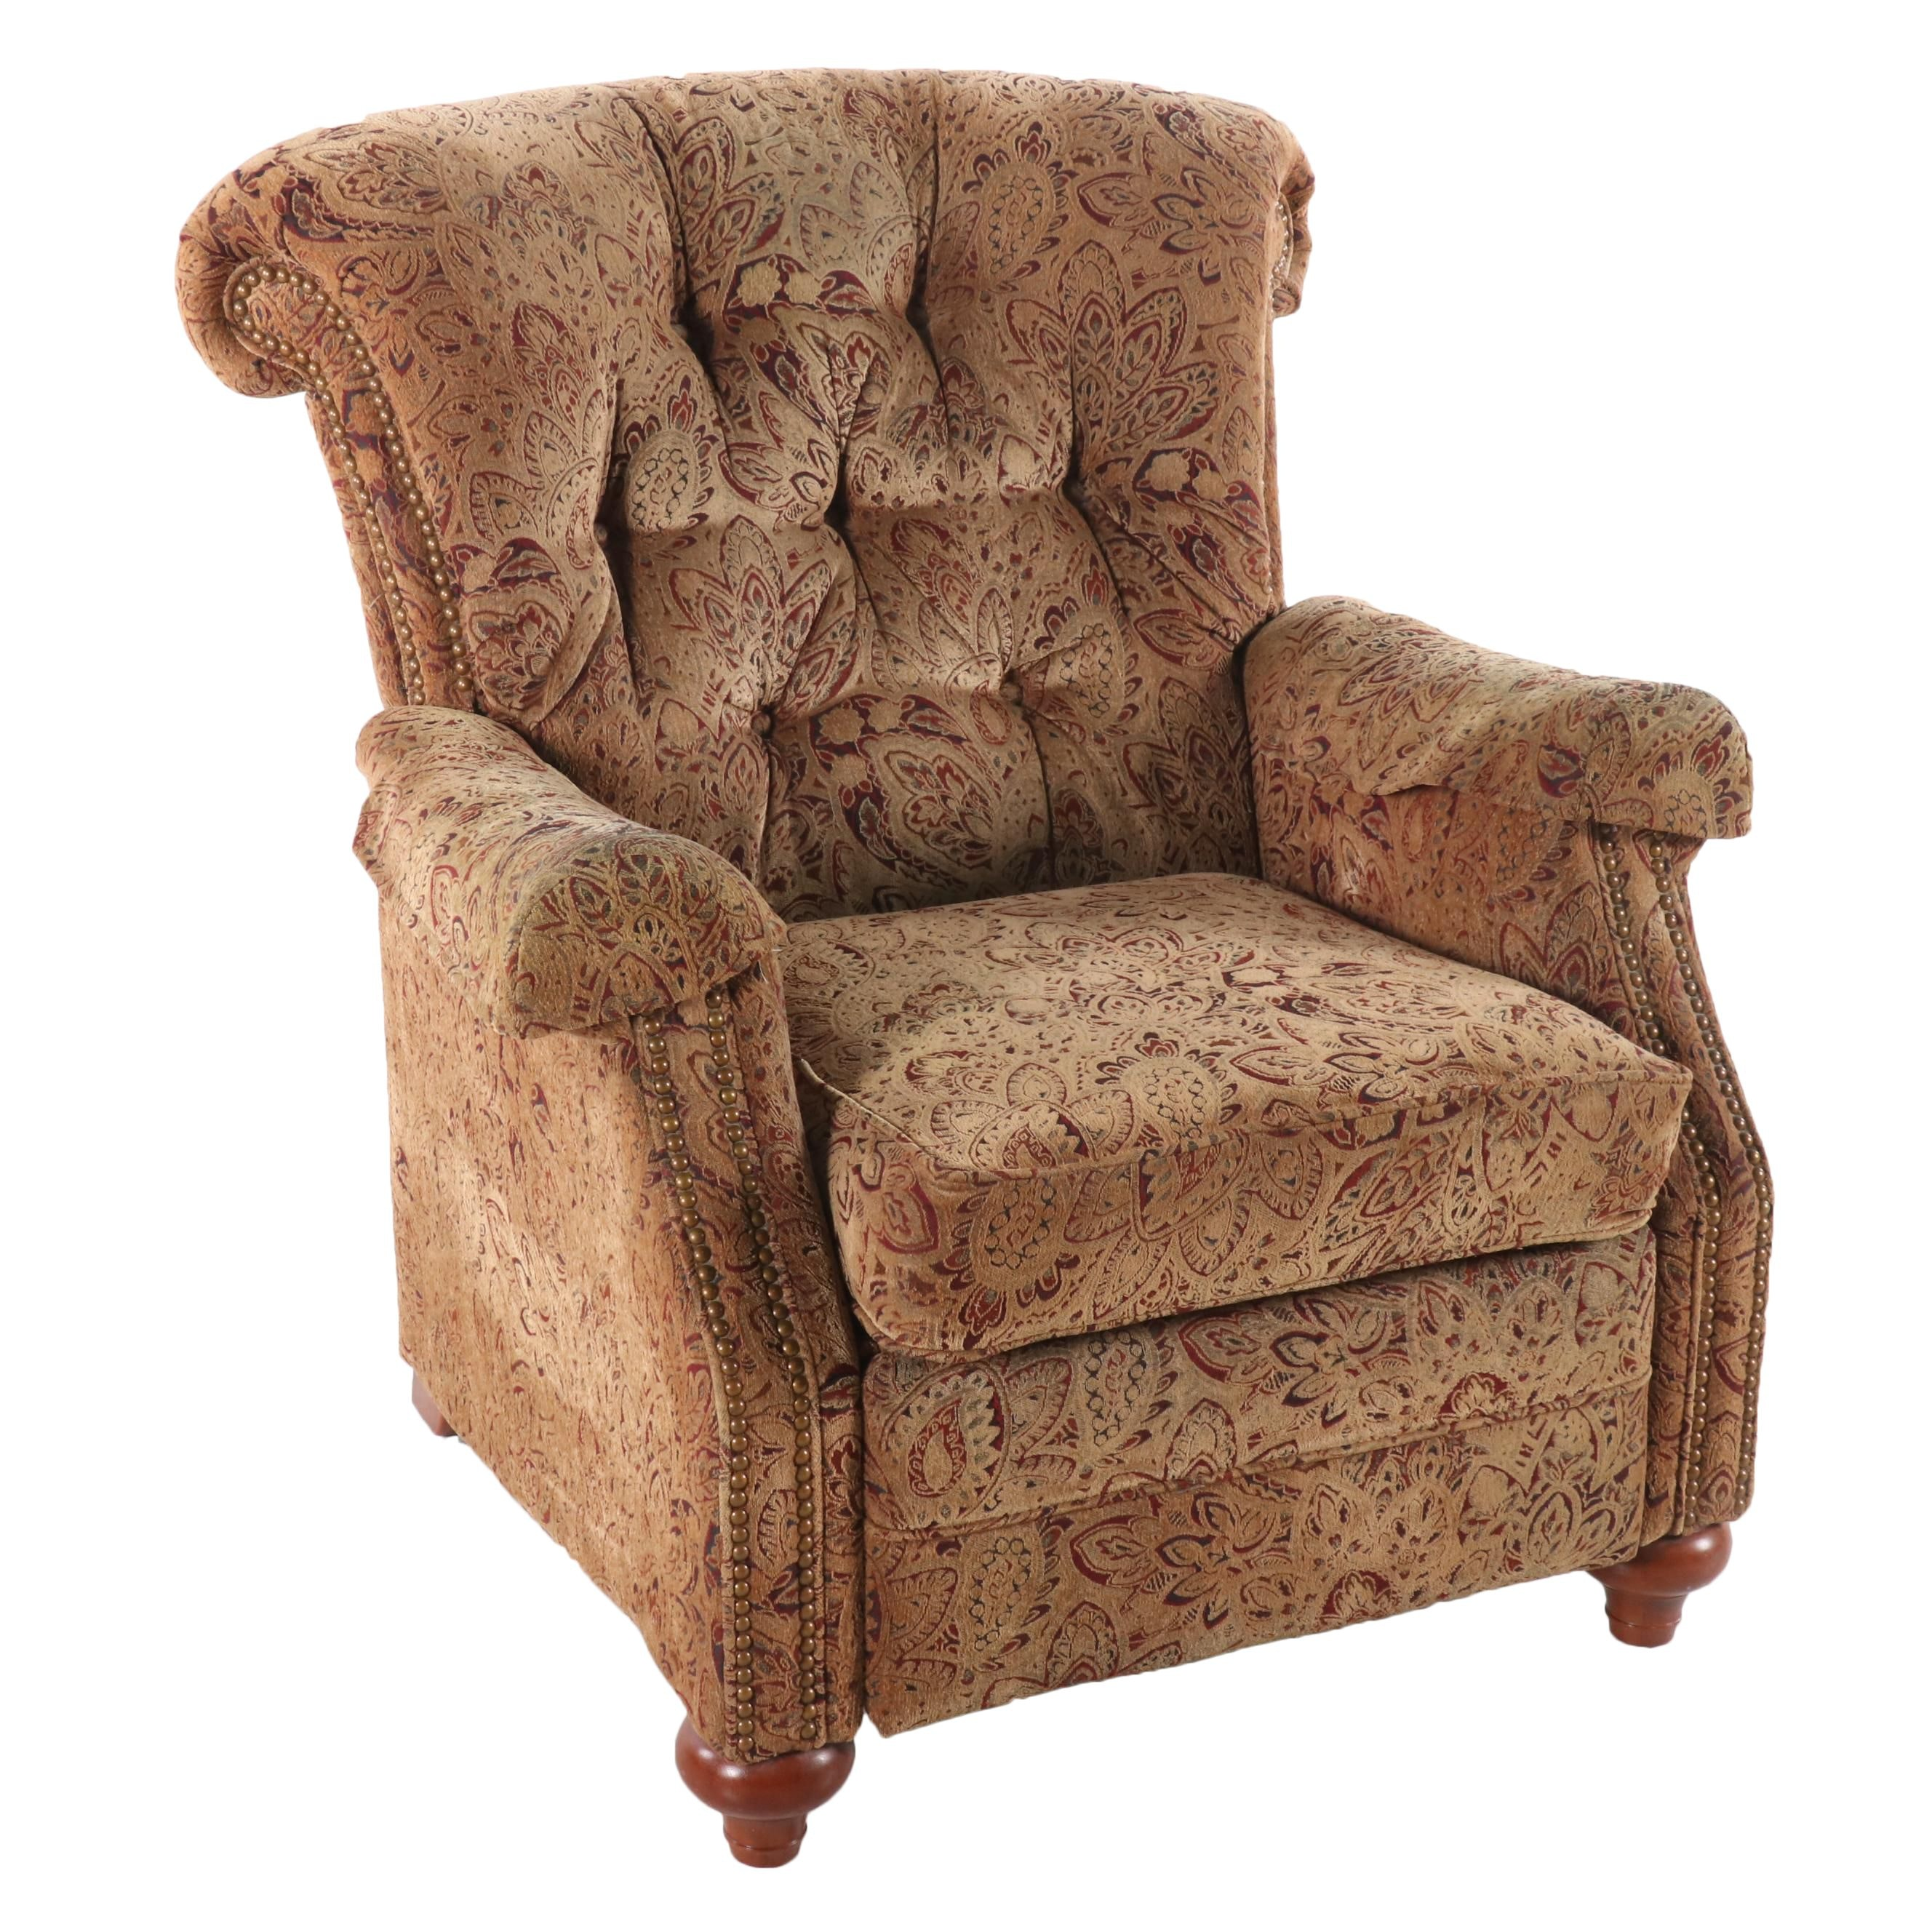 Contemporary La-Z-Boy Upholstered Armchair Recliner